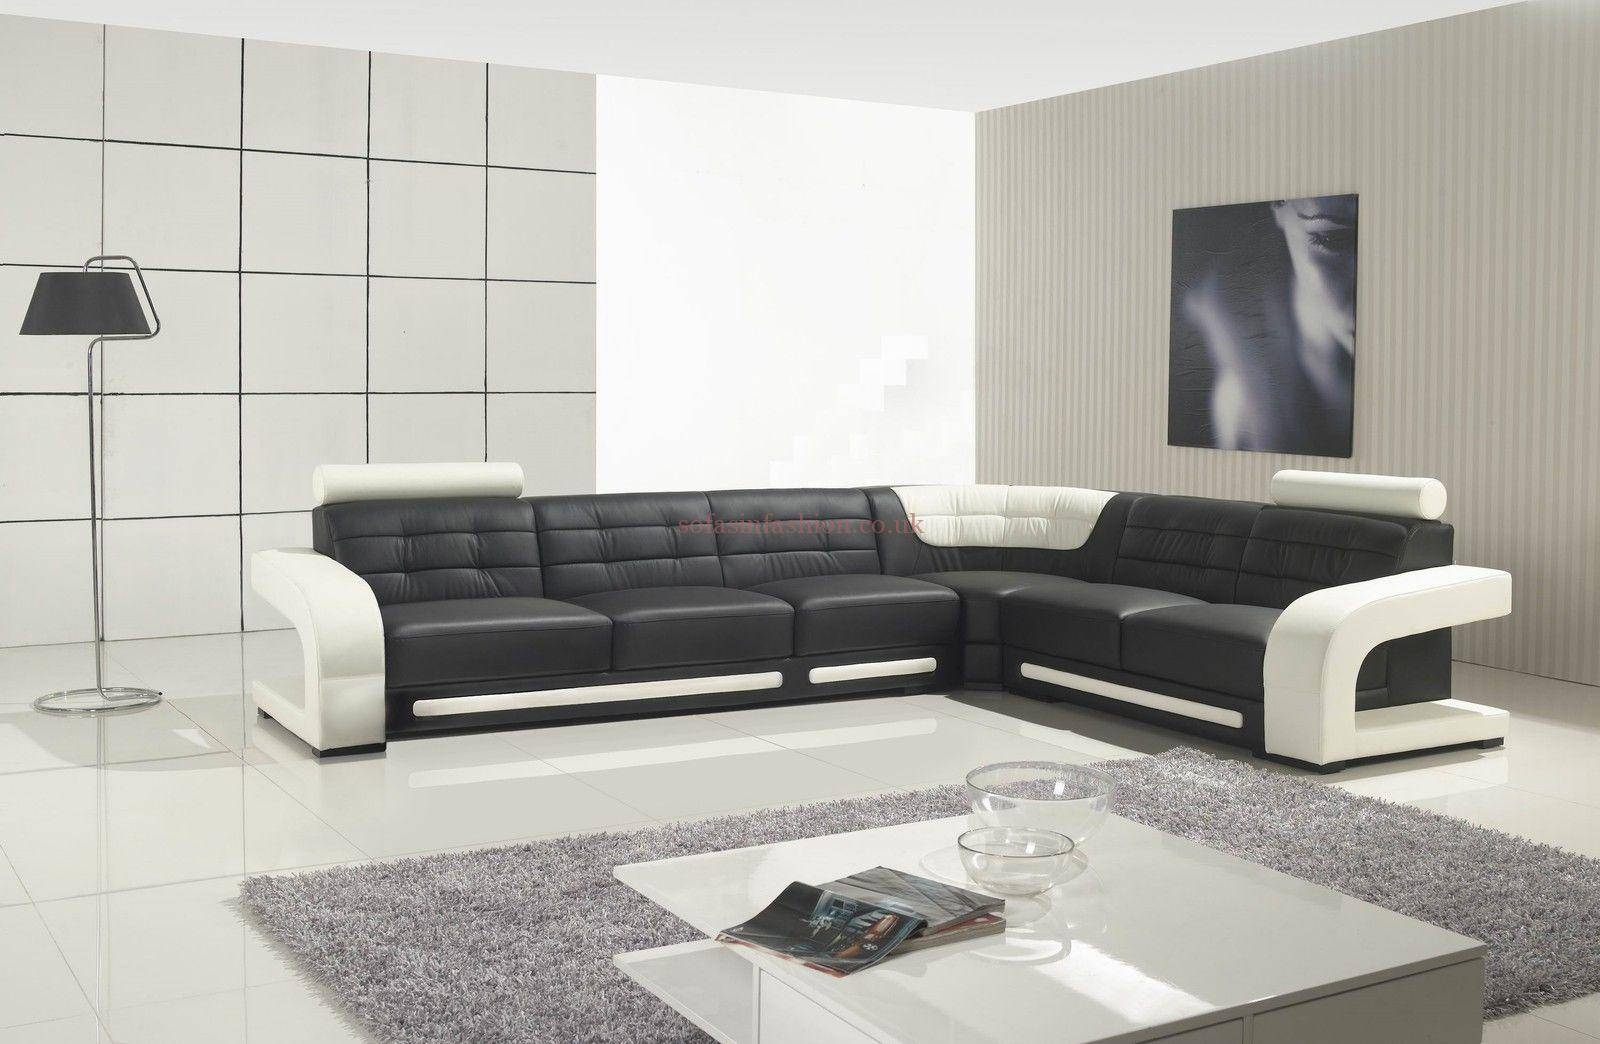 28 Leather Corner Sofas | Auto-Auctions for Leather Corner Sofas (Image 3 of 30)